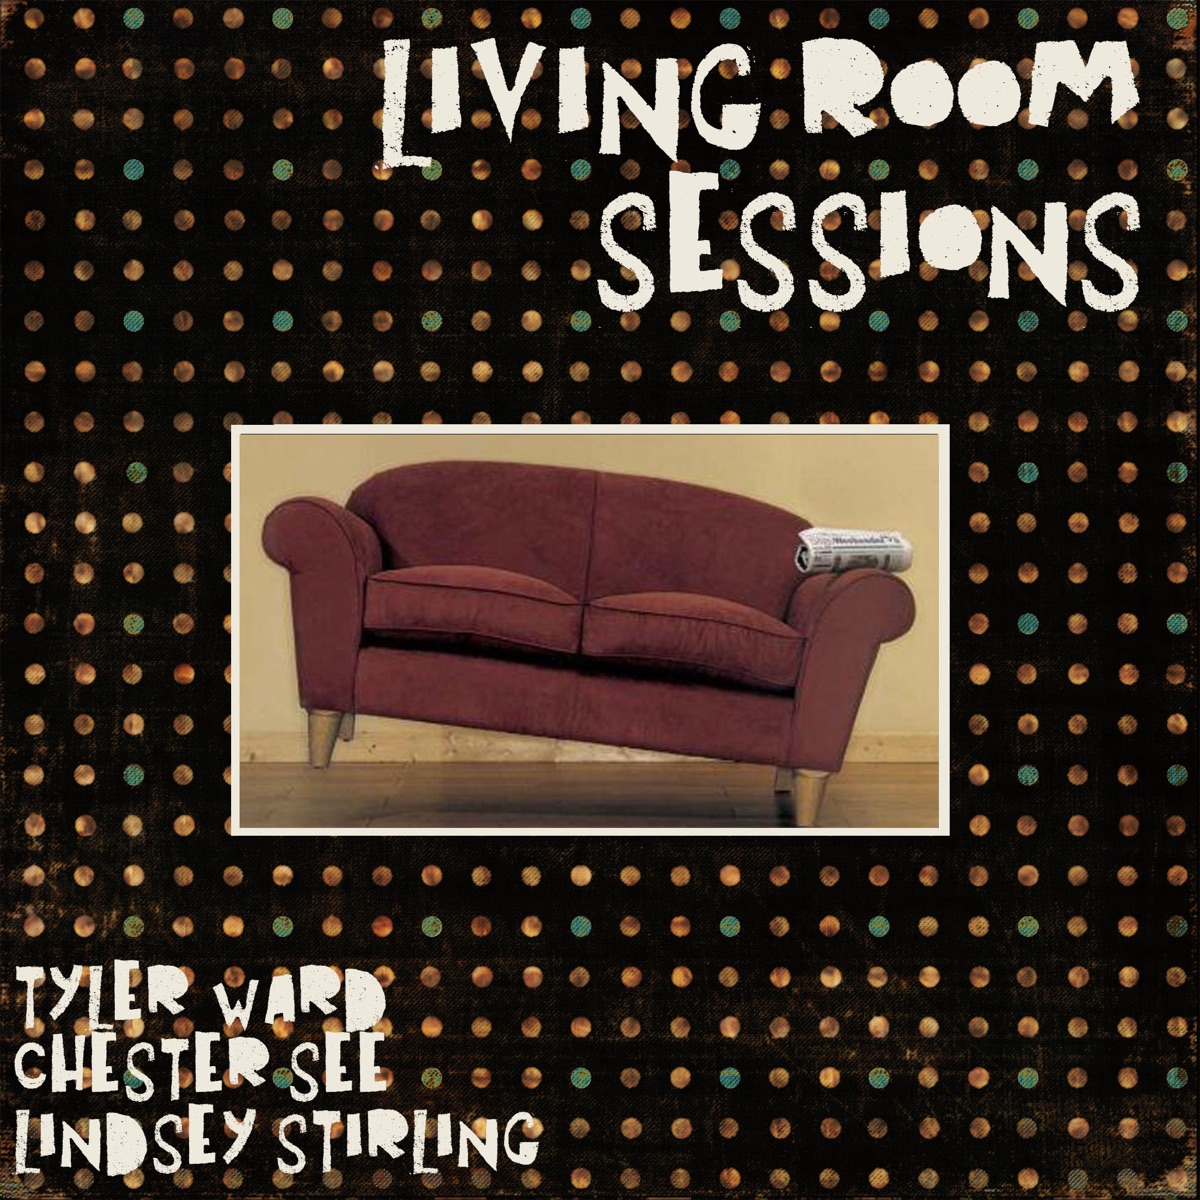 Living Room Sessions - Single Tyler Ward Chester See  Lindsey Stirling CD cover